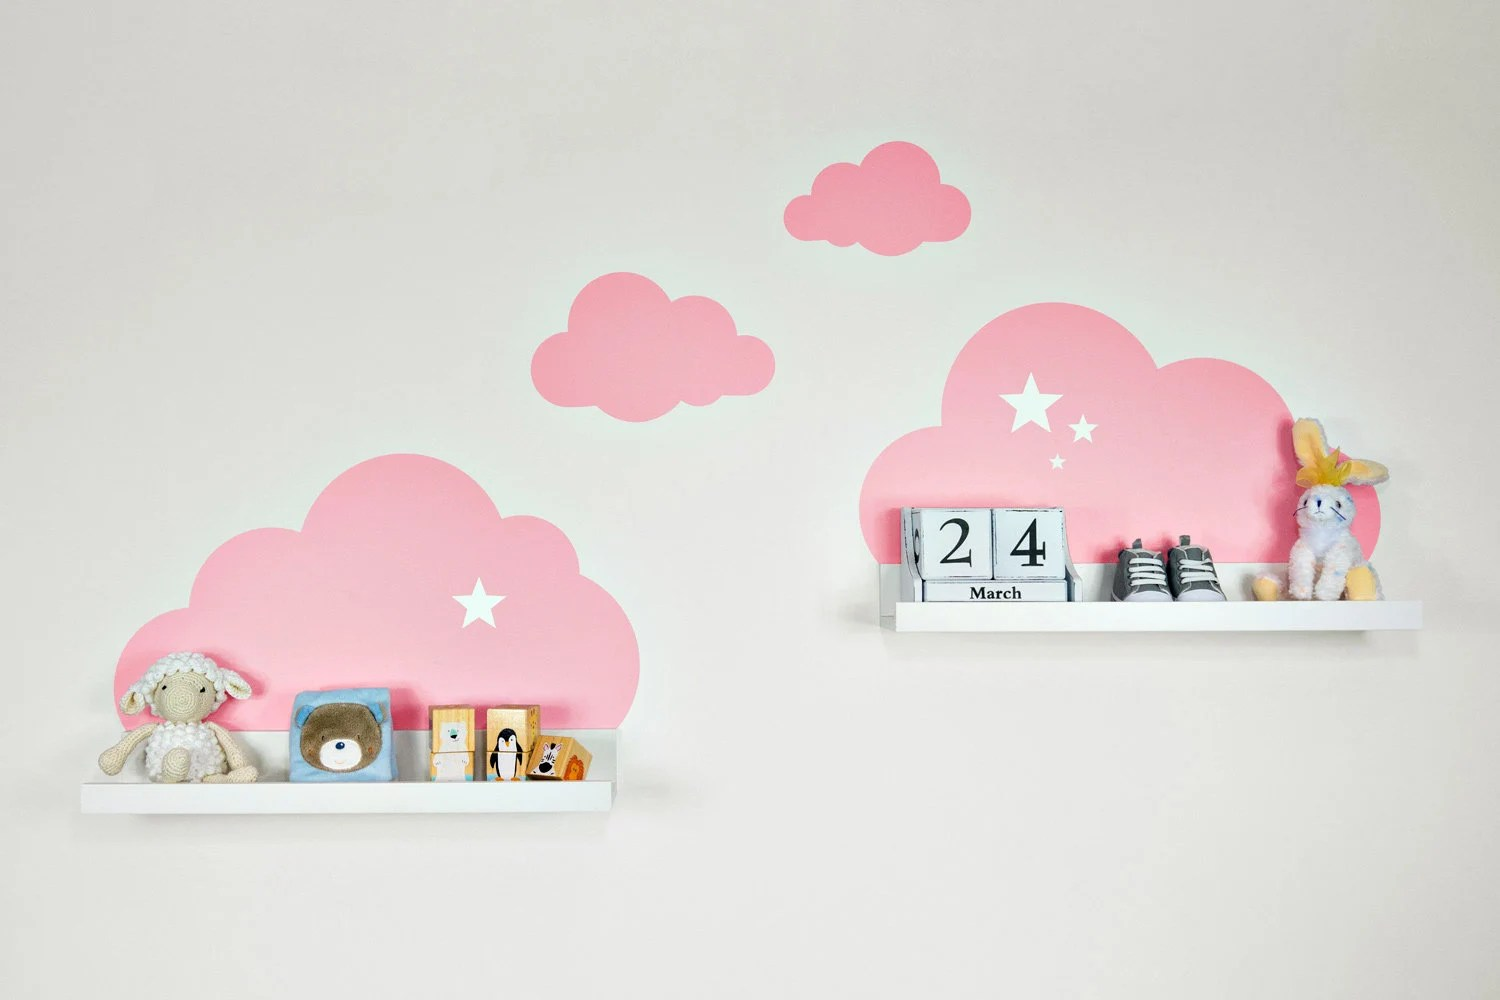 Ikea Bilderleiste Mosslanda Weiss Wall Decal Clouds Pink With Stars For Ikea Shelf Board Ribba Mosslanda 55 Cm Picture Bar For Baby Room Sticker Wall Wallpaper